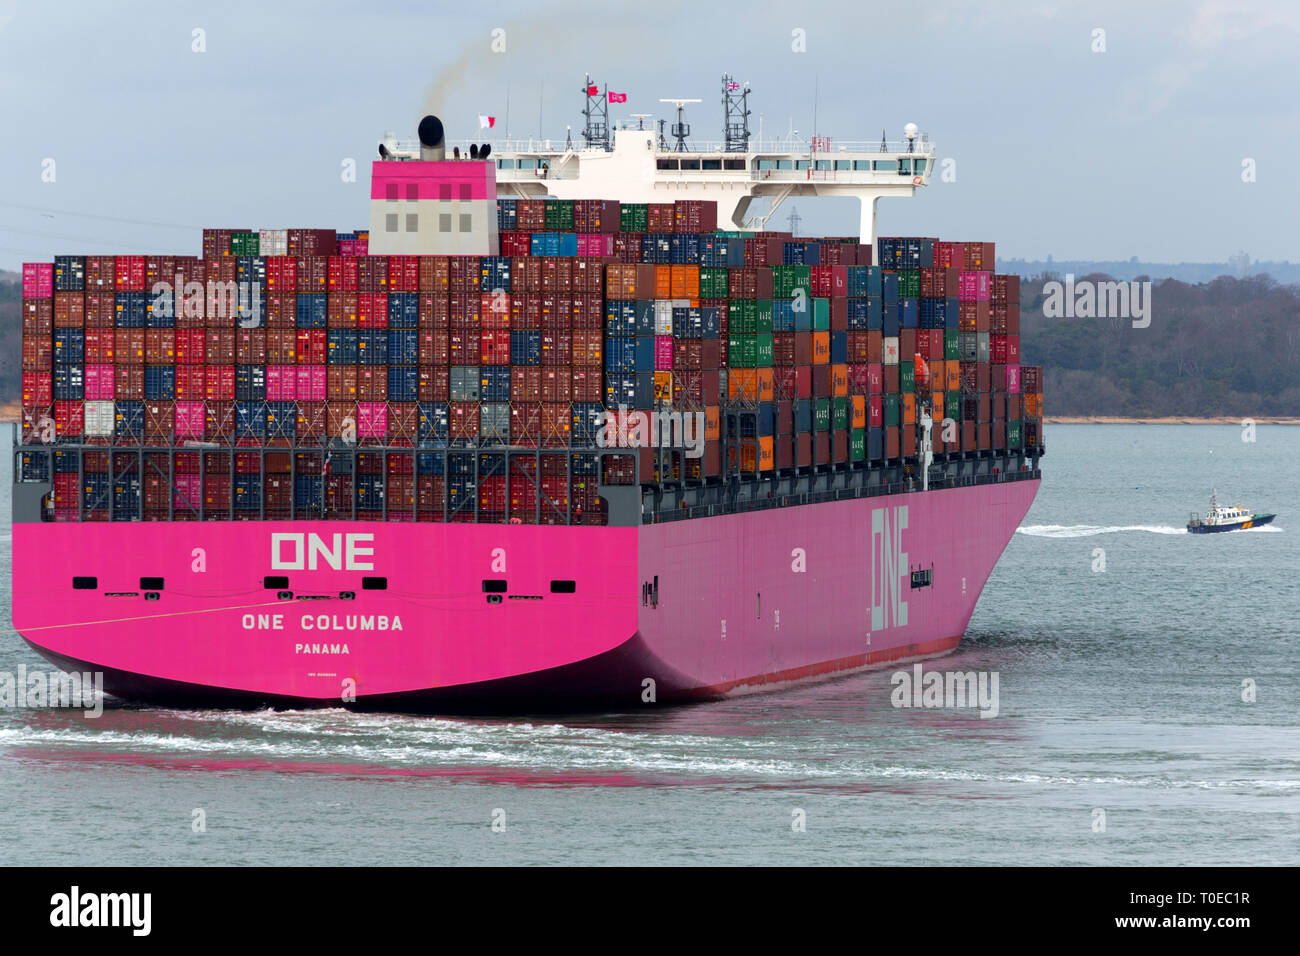 Pink,Ship, One Columbia, Panama, The Solent, heading, Southampton, Container Terminal, Cowes, Isle of Wight, Hampshire, England, UK Stock Photo